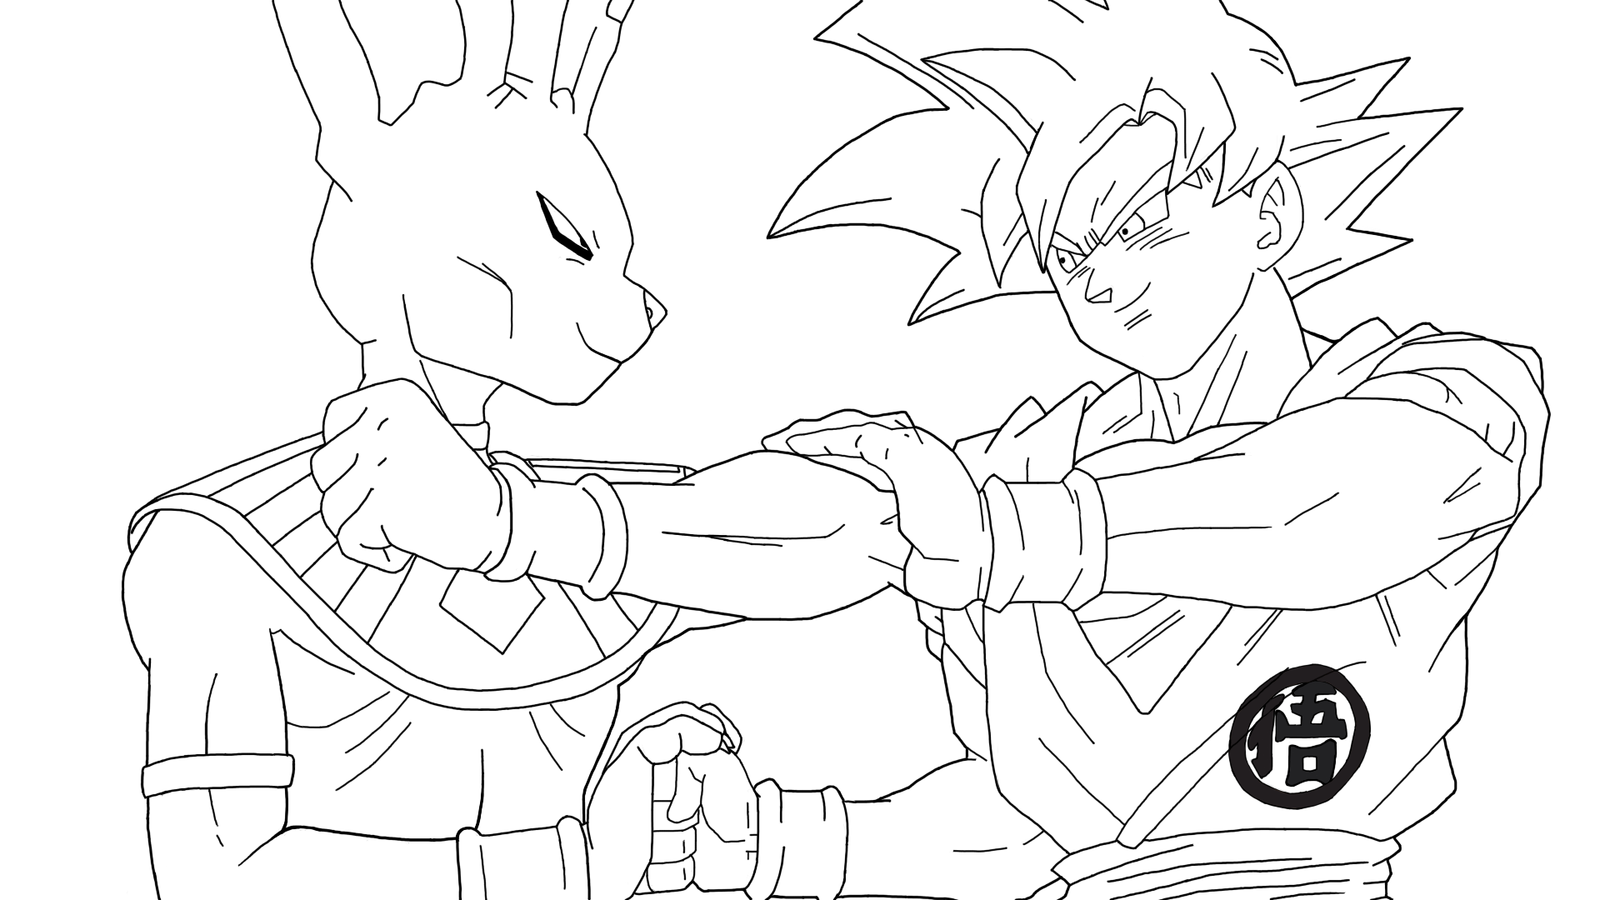 dragon ball z beerus coloring pages beerus from dragon ball super coloring pages by pages dragon z ball coloring beerus